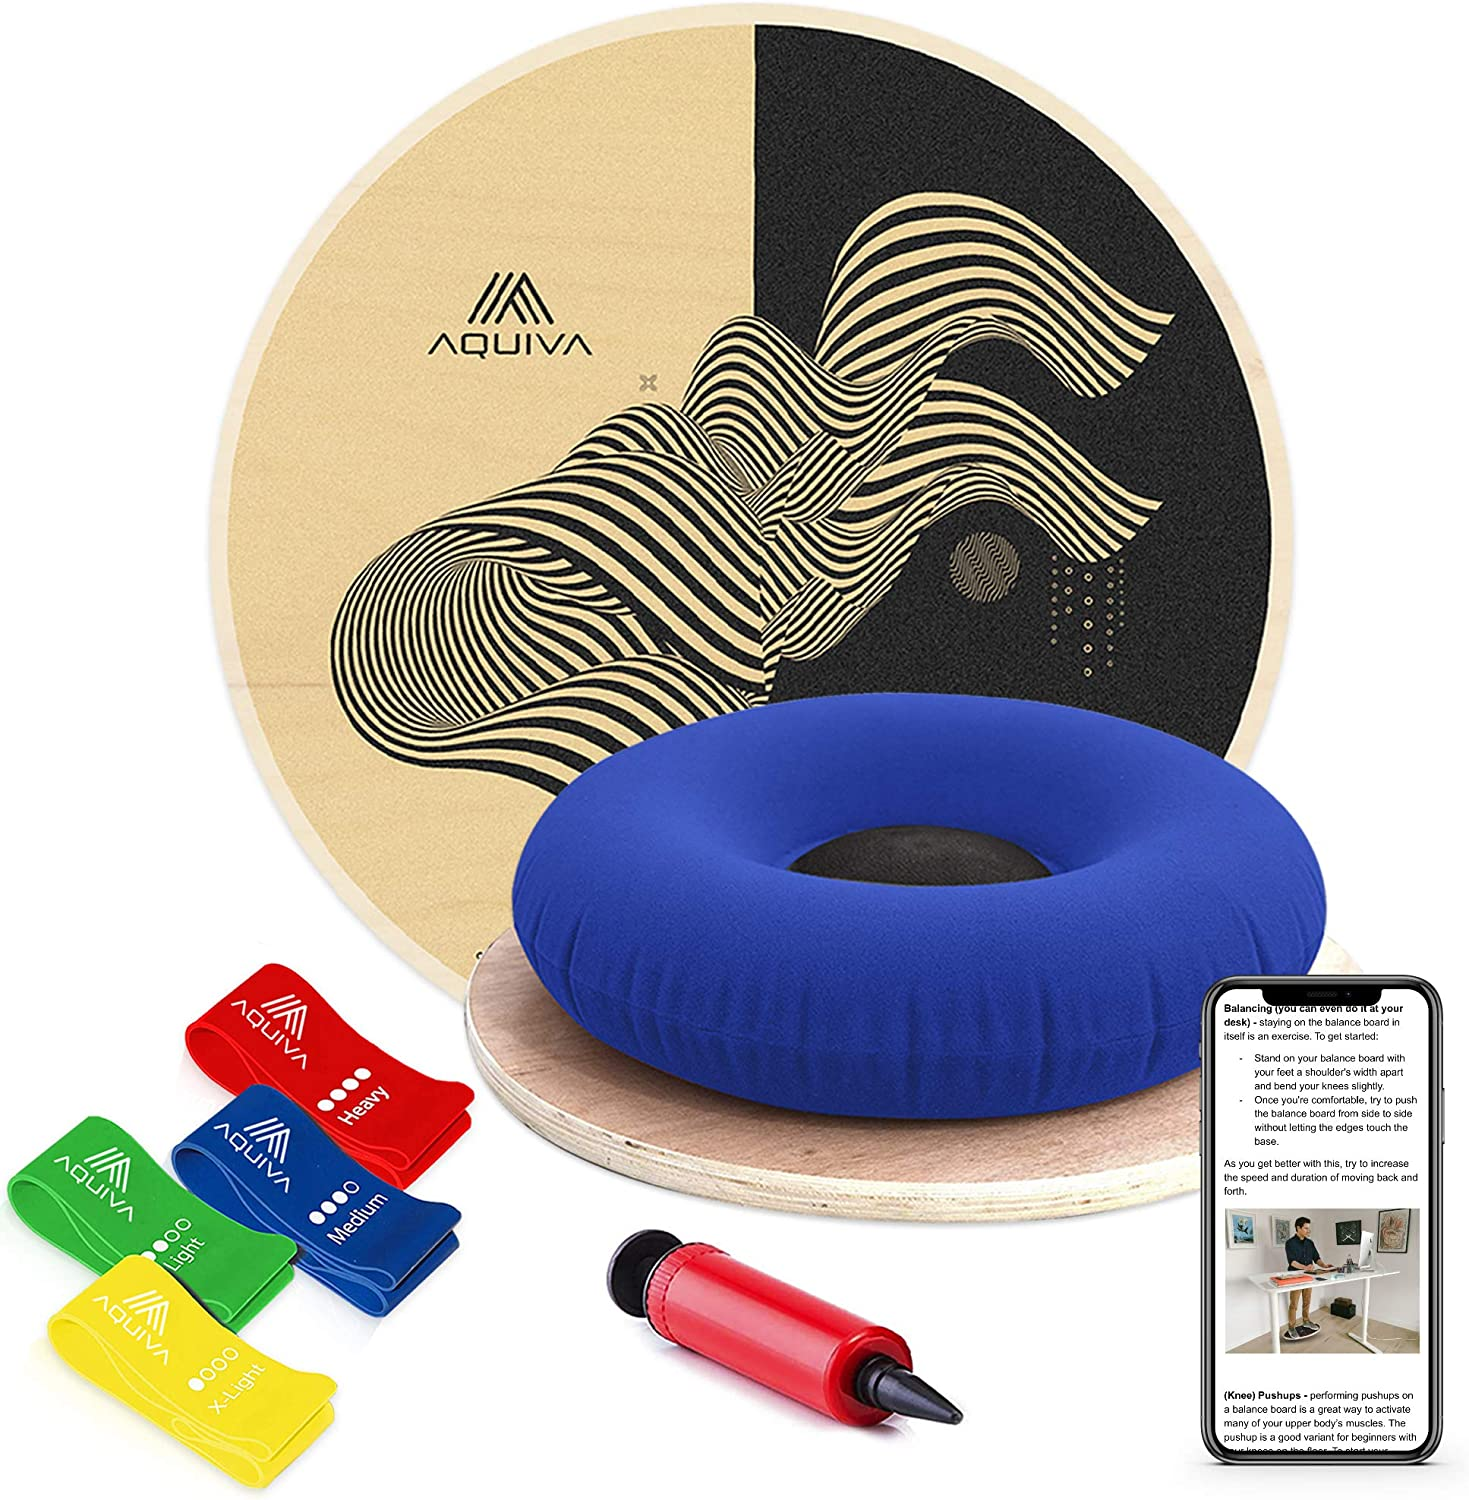 AQUIVA Wooden Wobble Balance Board Equipment with Resistance Loop Bands for Physical Therapy and Exercise